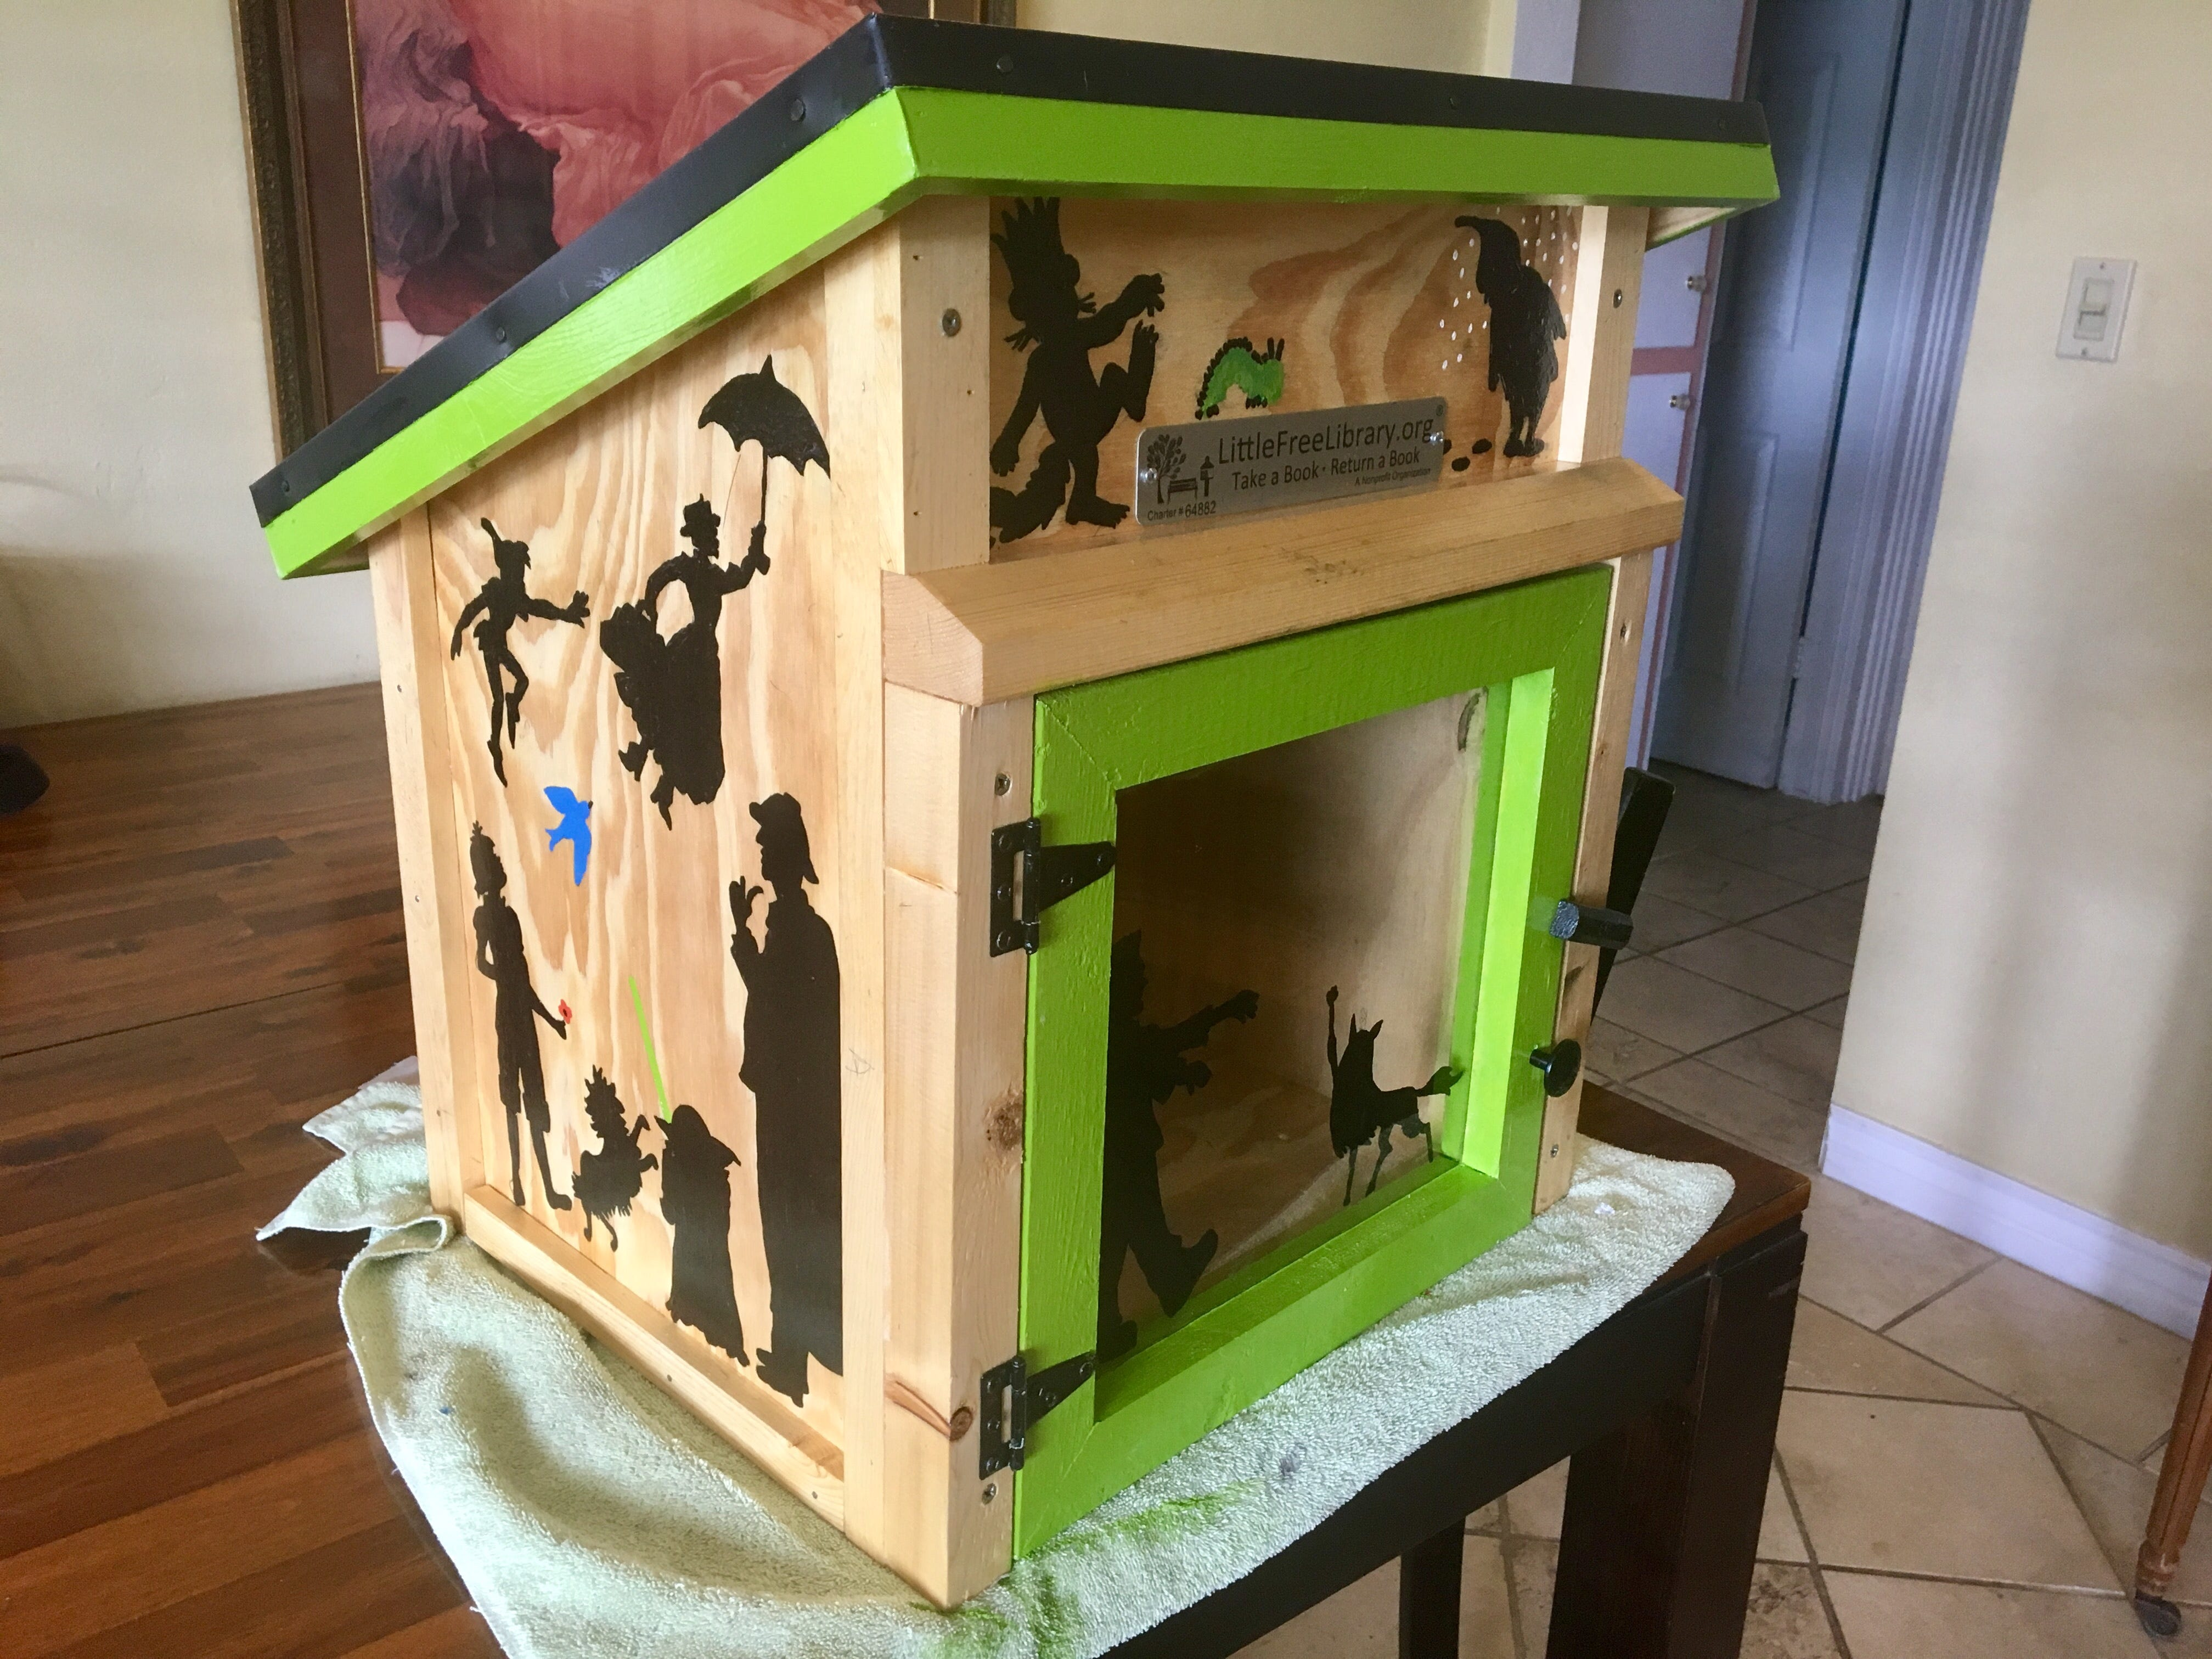 With a few days off, Karina Bland painted theL ittle Free Library with silhouettes of book characters and edged it in bright green.